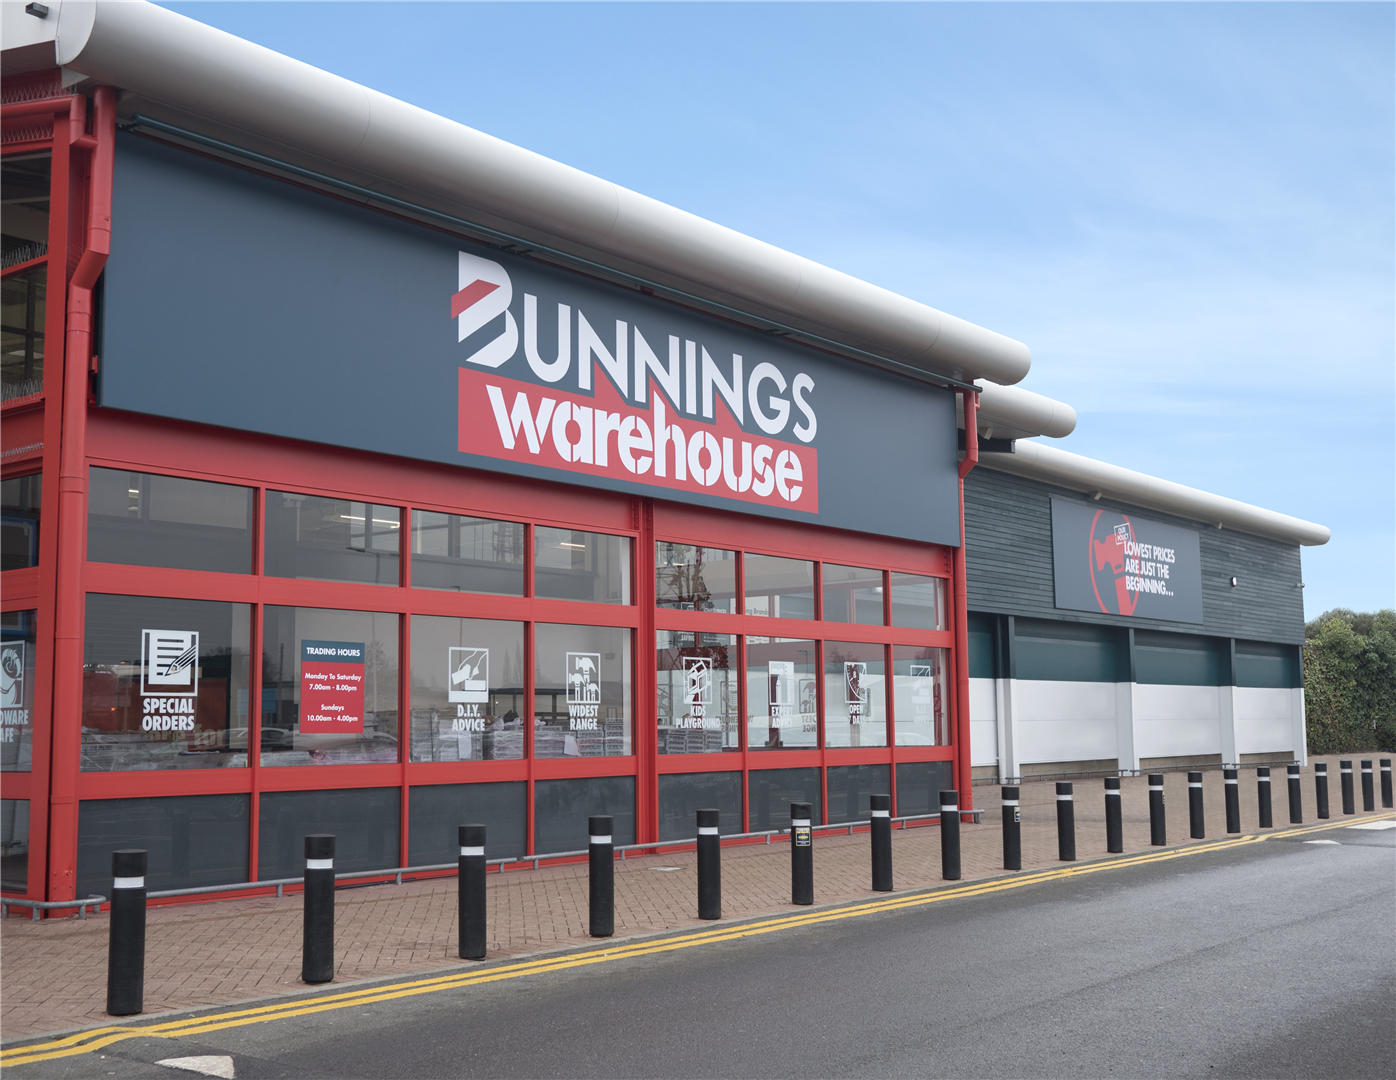 epr retail news wesfarmers group opens its first bunnings warehouse store in the uk and ireland. Black Bedroom Furniture Sets. Home Design Ideas